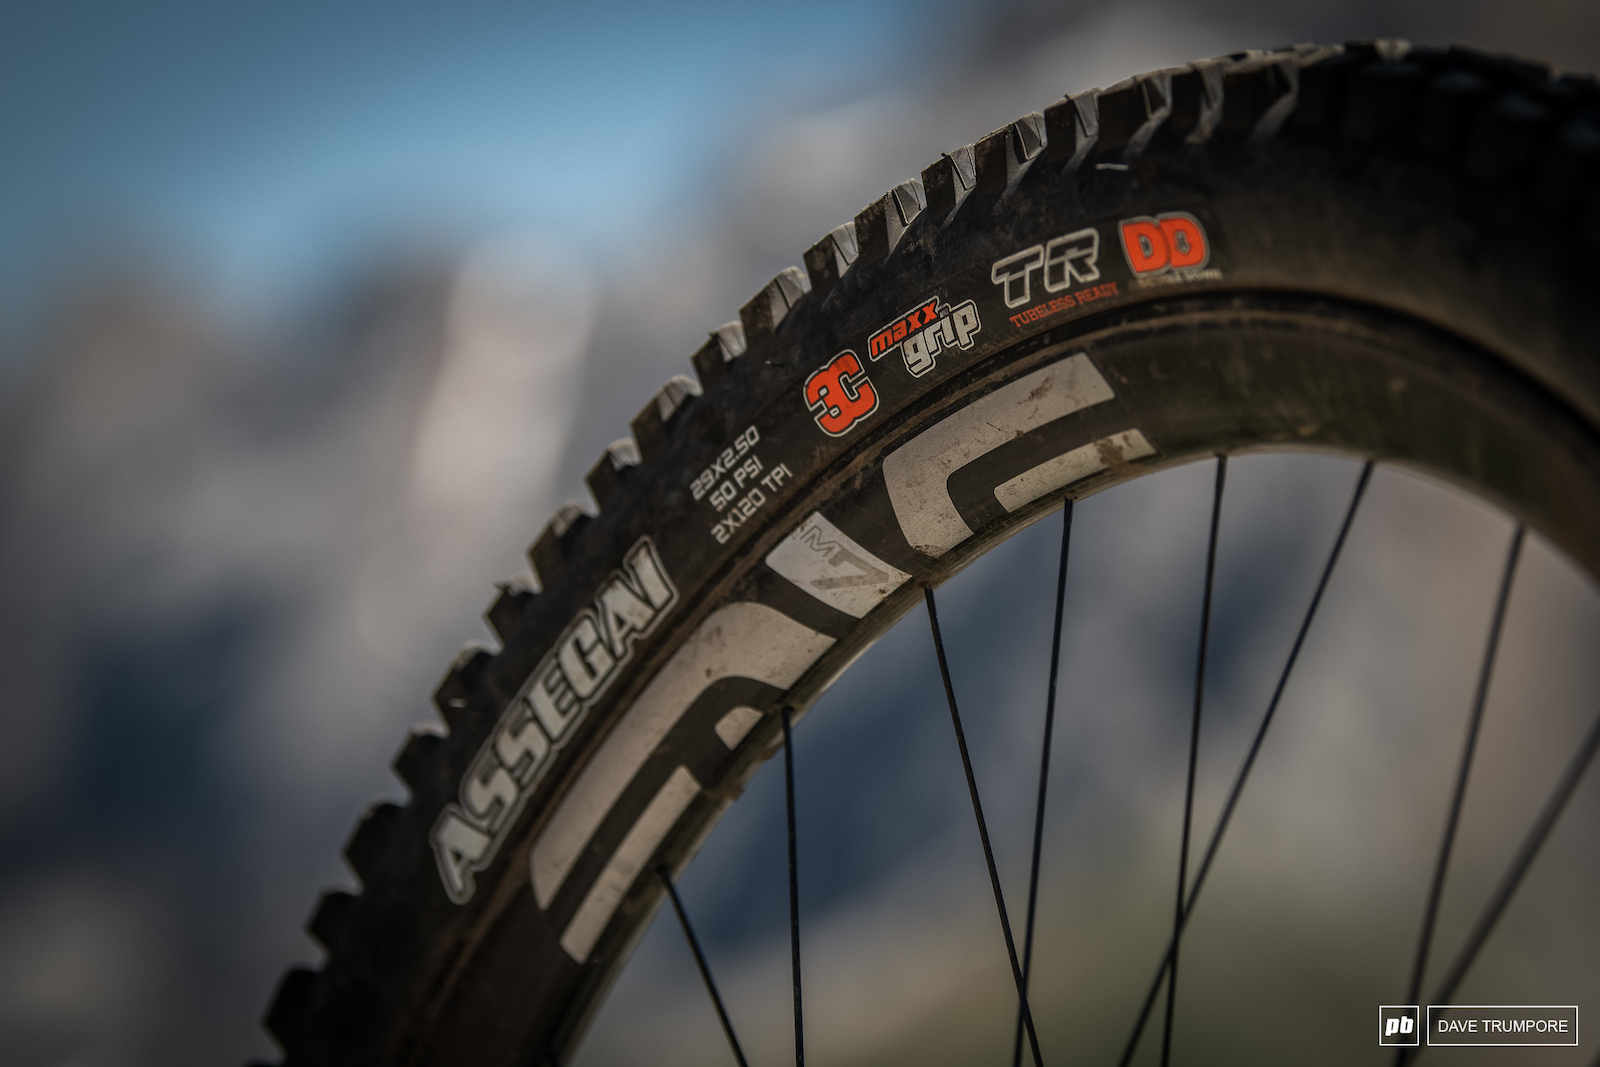 Wheels are Enve M730 with proprietary rim strip. Laced to Industry nine hubs and with Maxxis Assegai 2.5 tires.